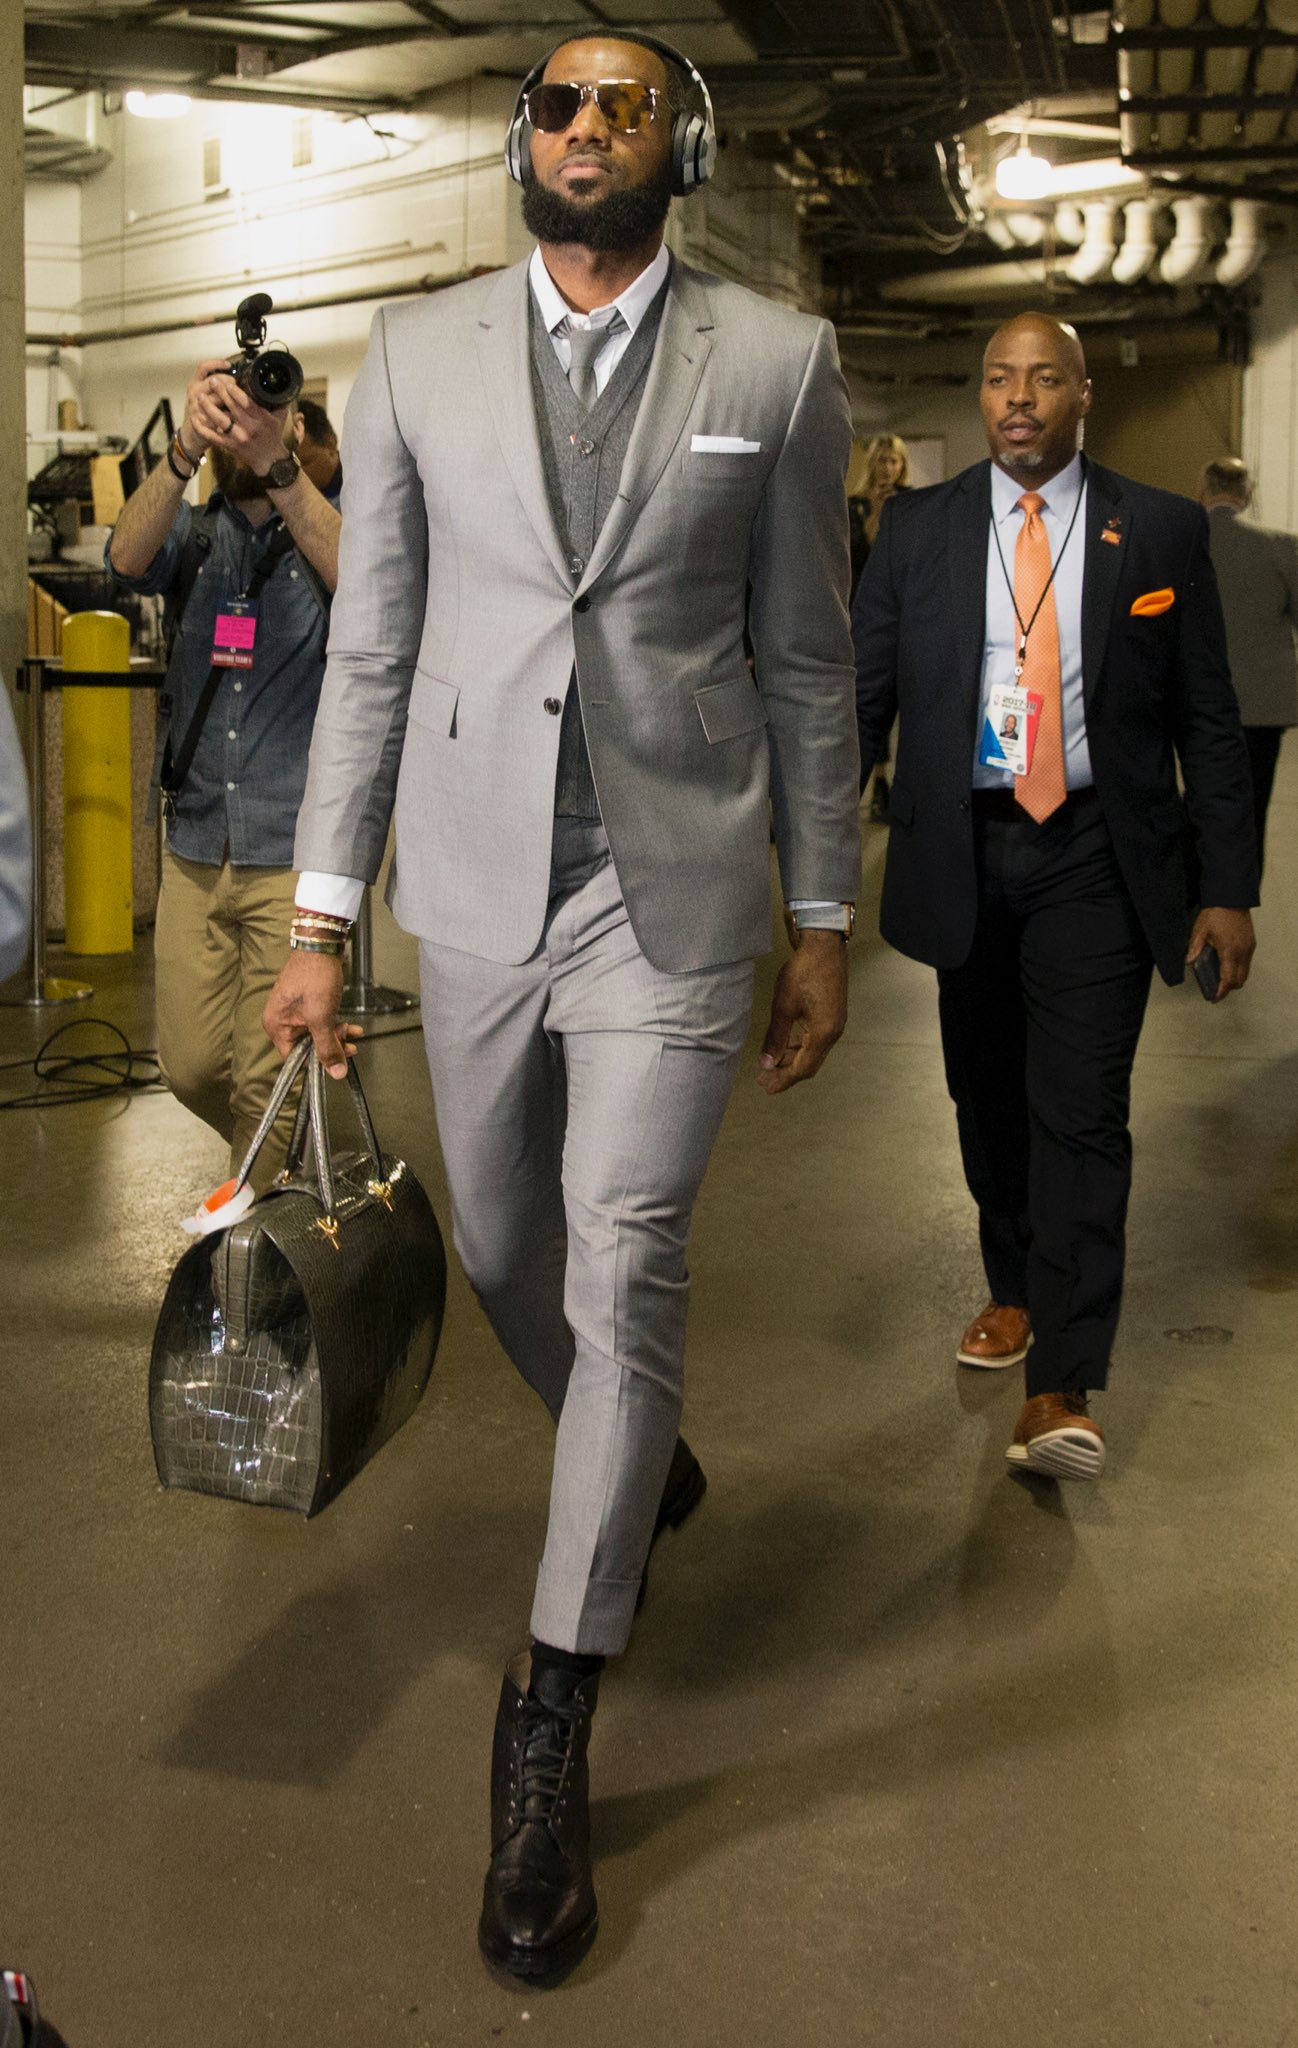 LeBron arrives for tonight's @Cavs #NBAPlayoffs action in Indianapolis (7pm/et @ESPNNBA). https://t.co/4tRumliMnj